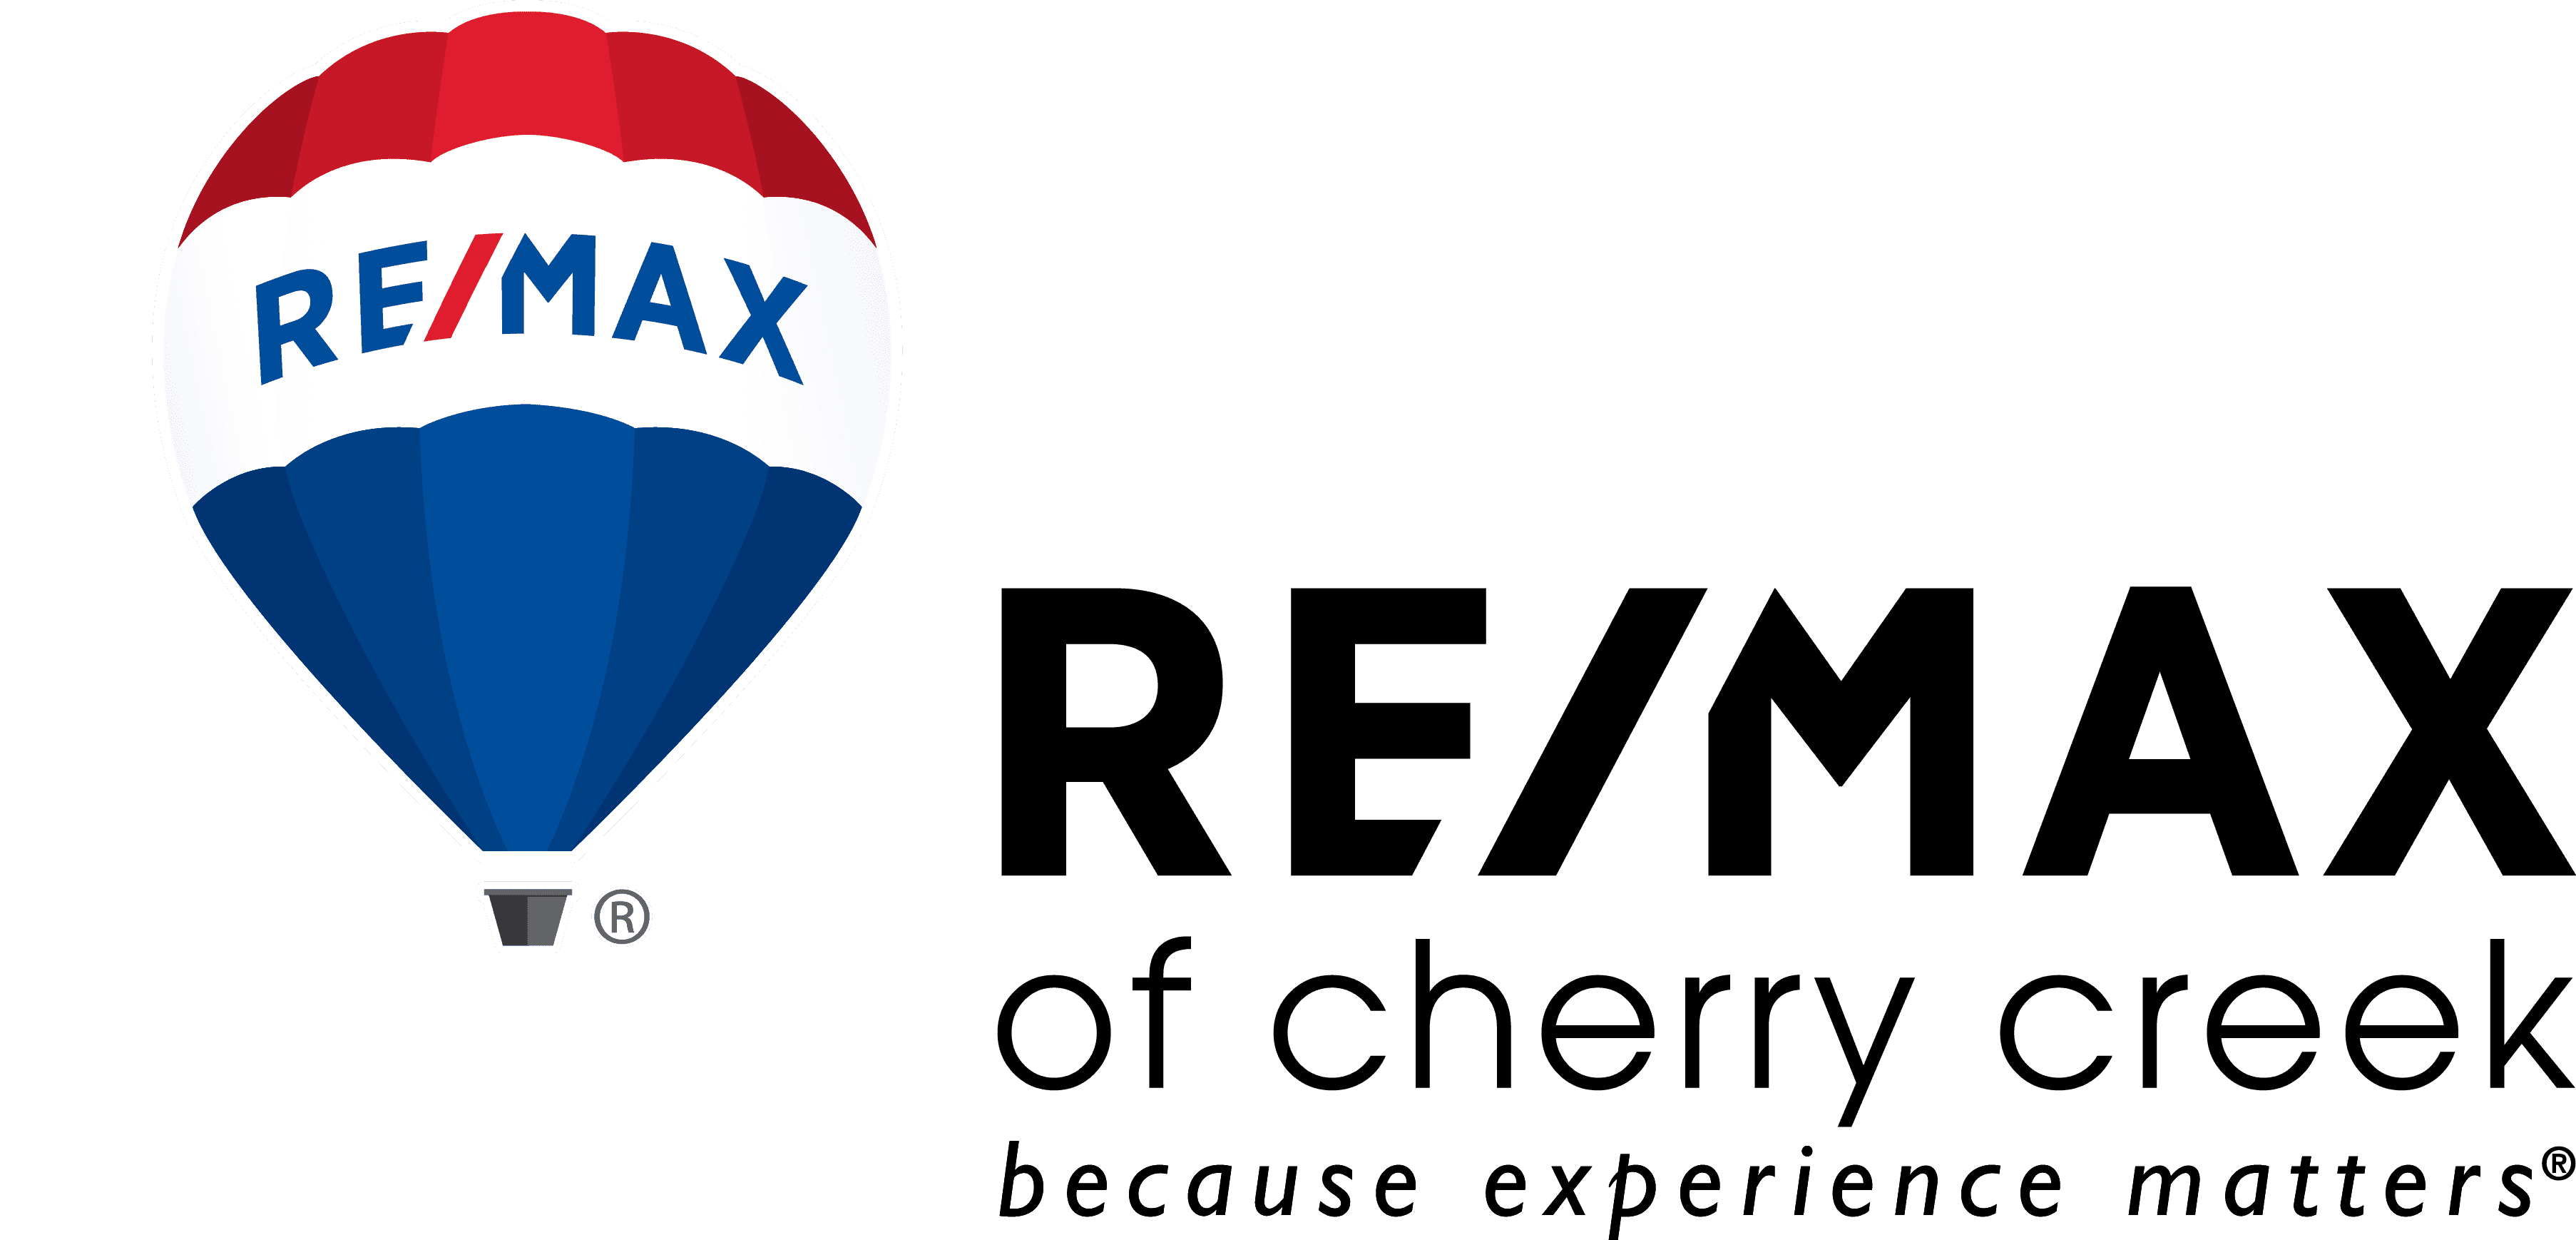 RE/MAX Cherry Creek